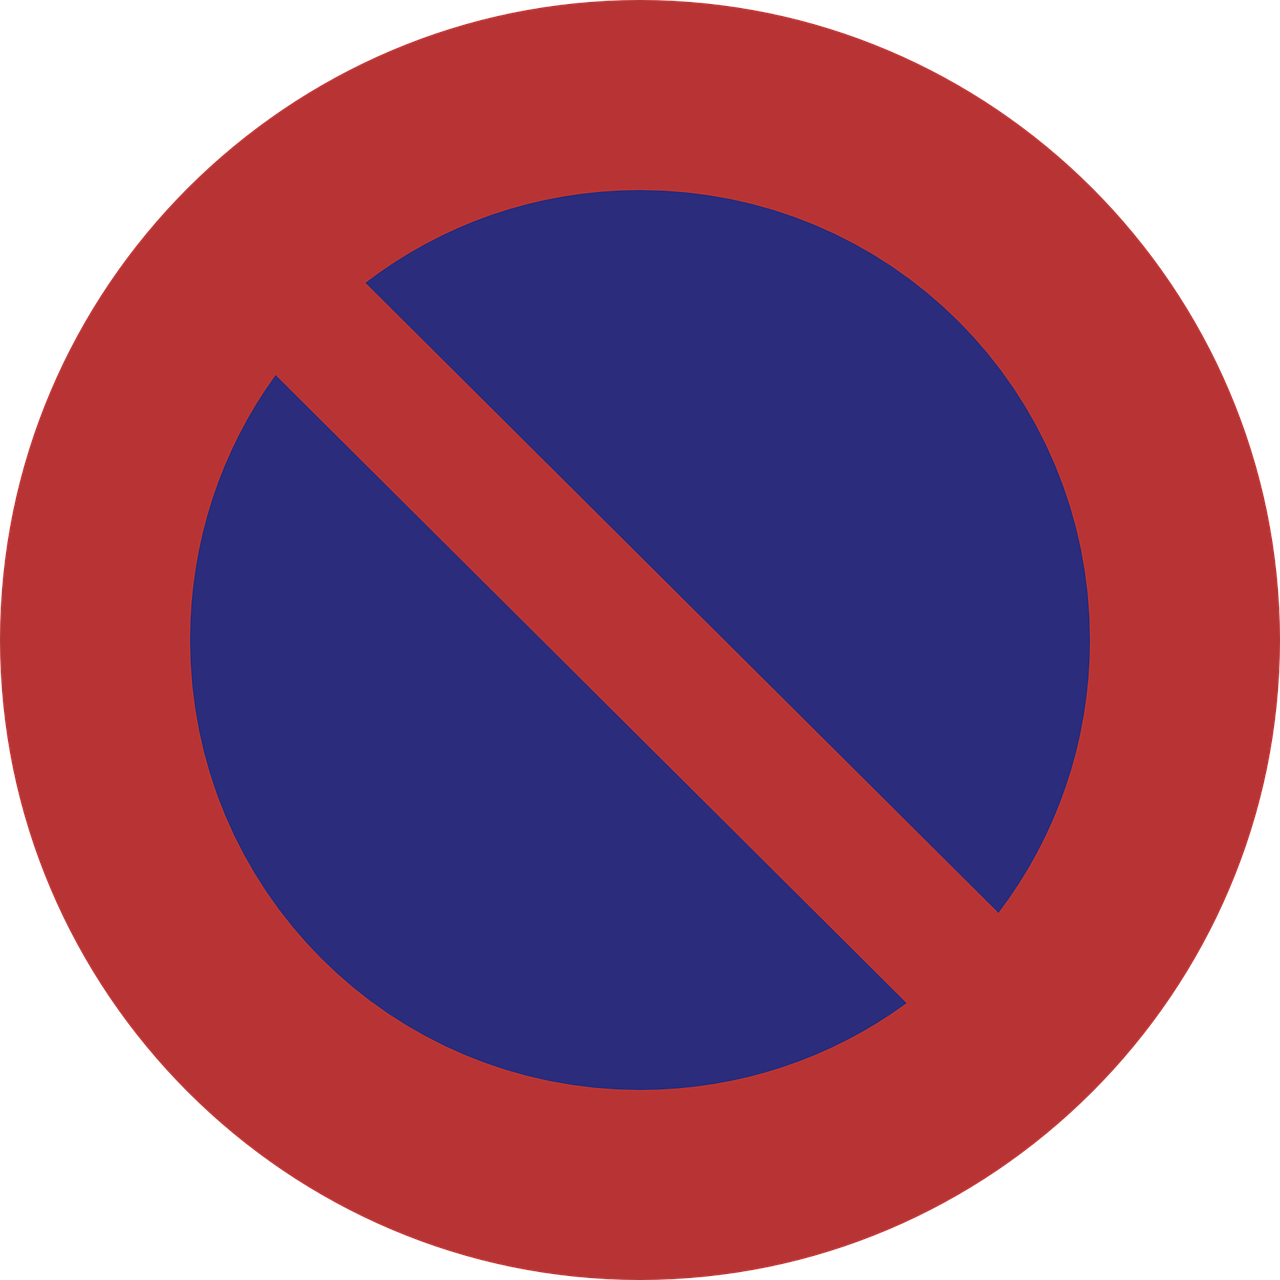 No Parking Restriction